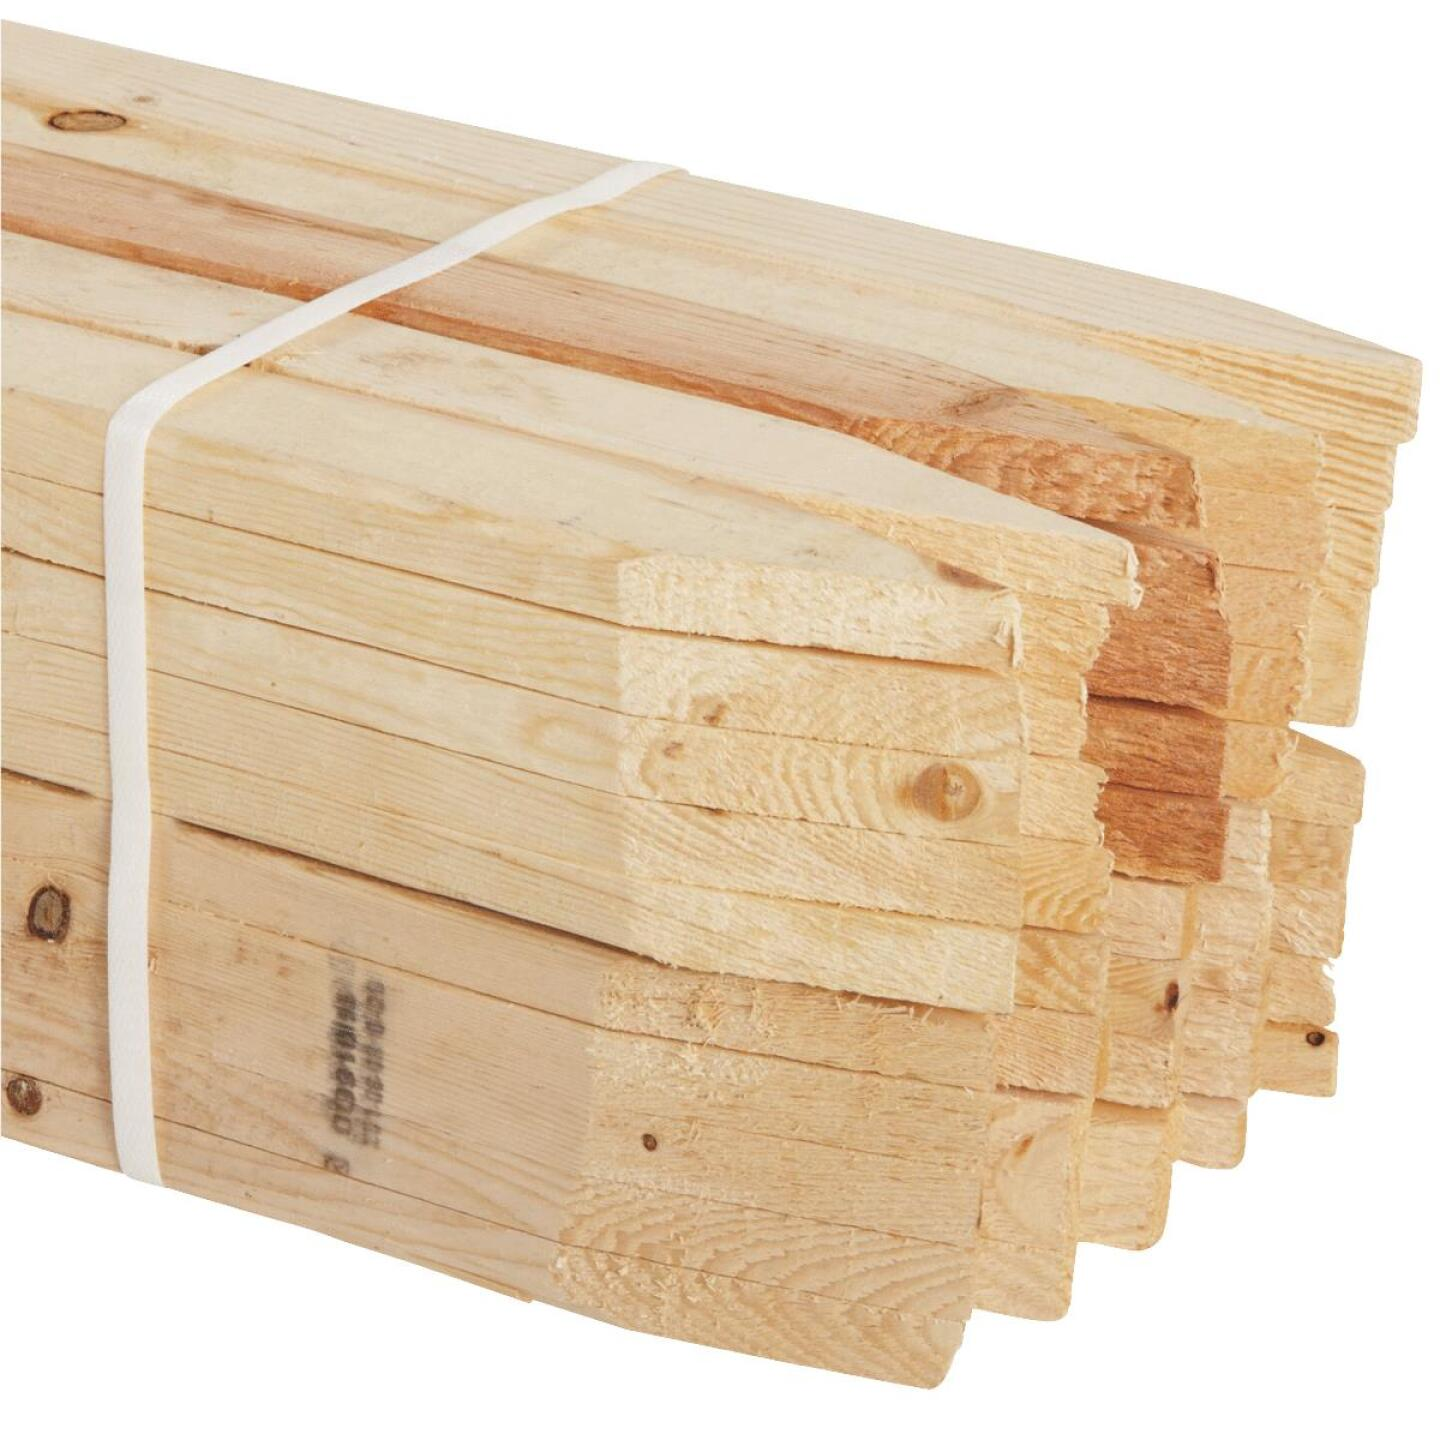 Kitzmans 3/8 In. x 1-1/2 In. x 48 In. Lath Stake (50-Pack) Image 1